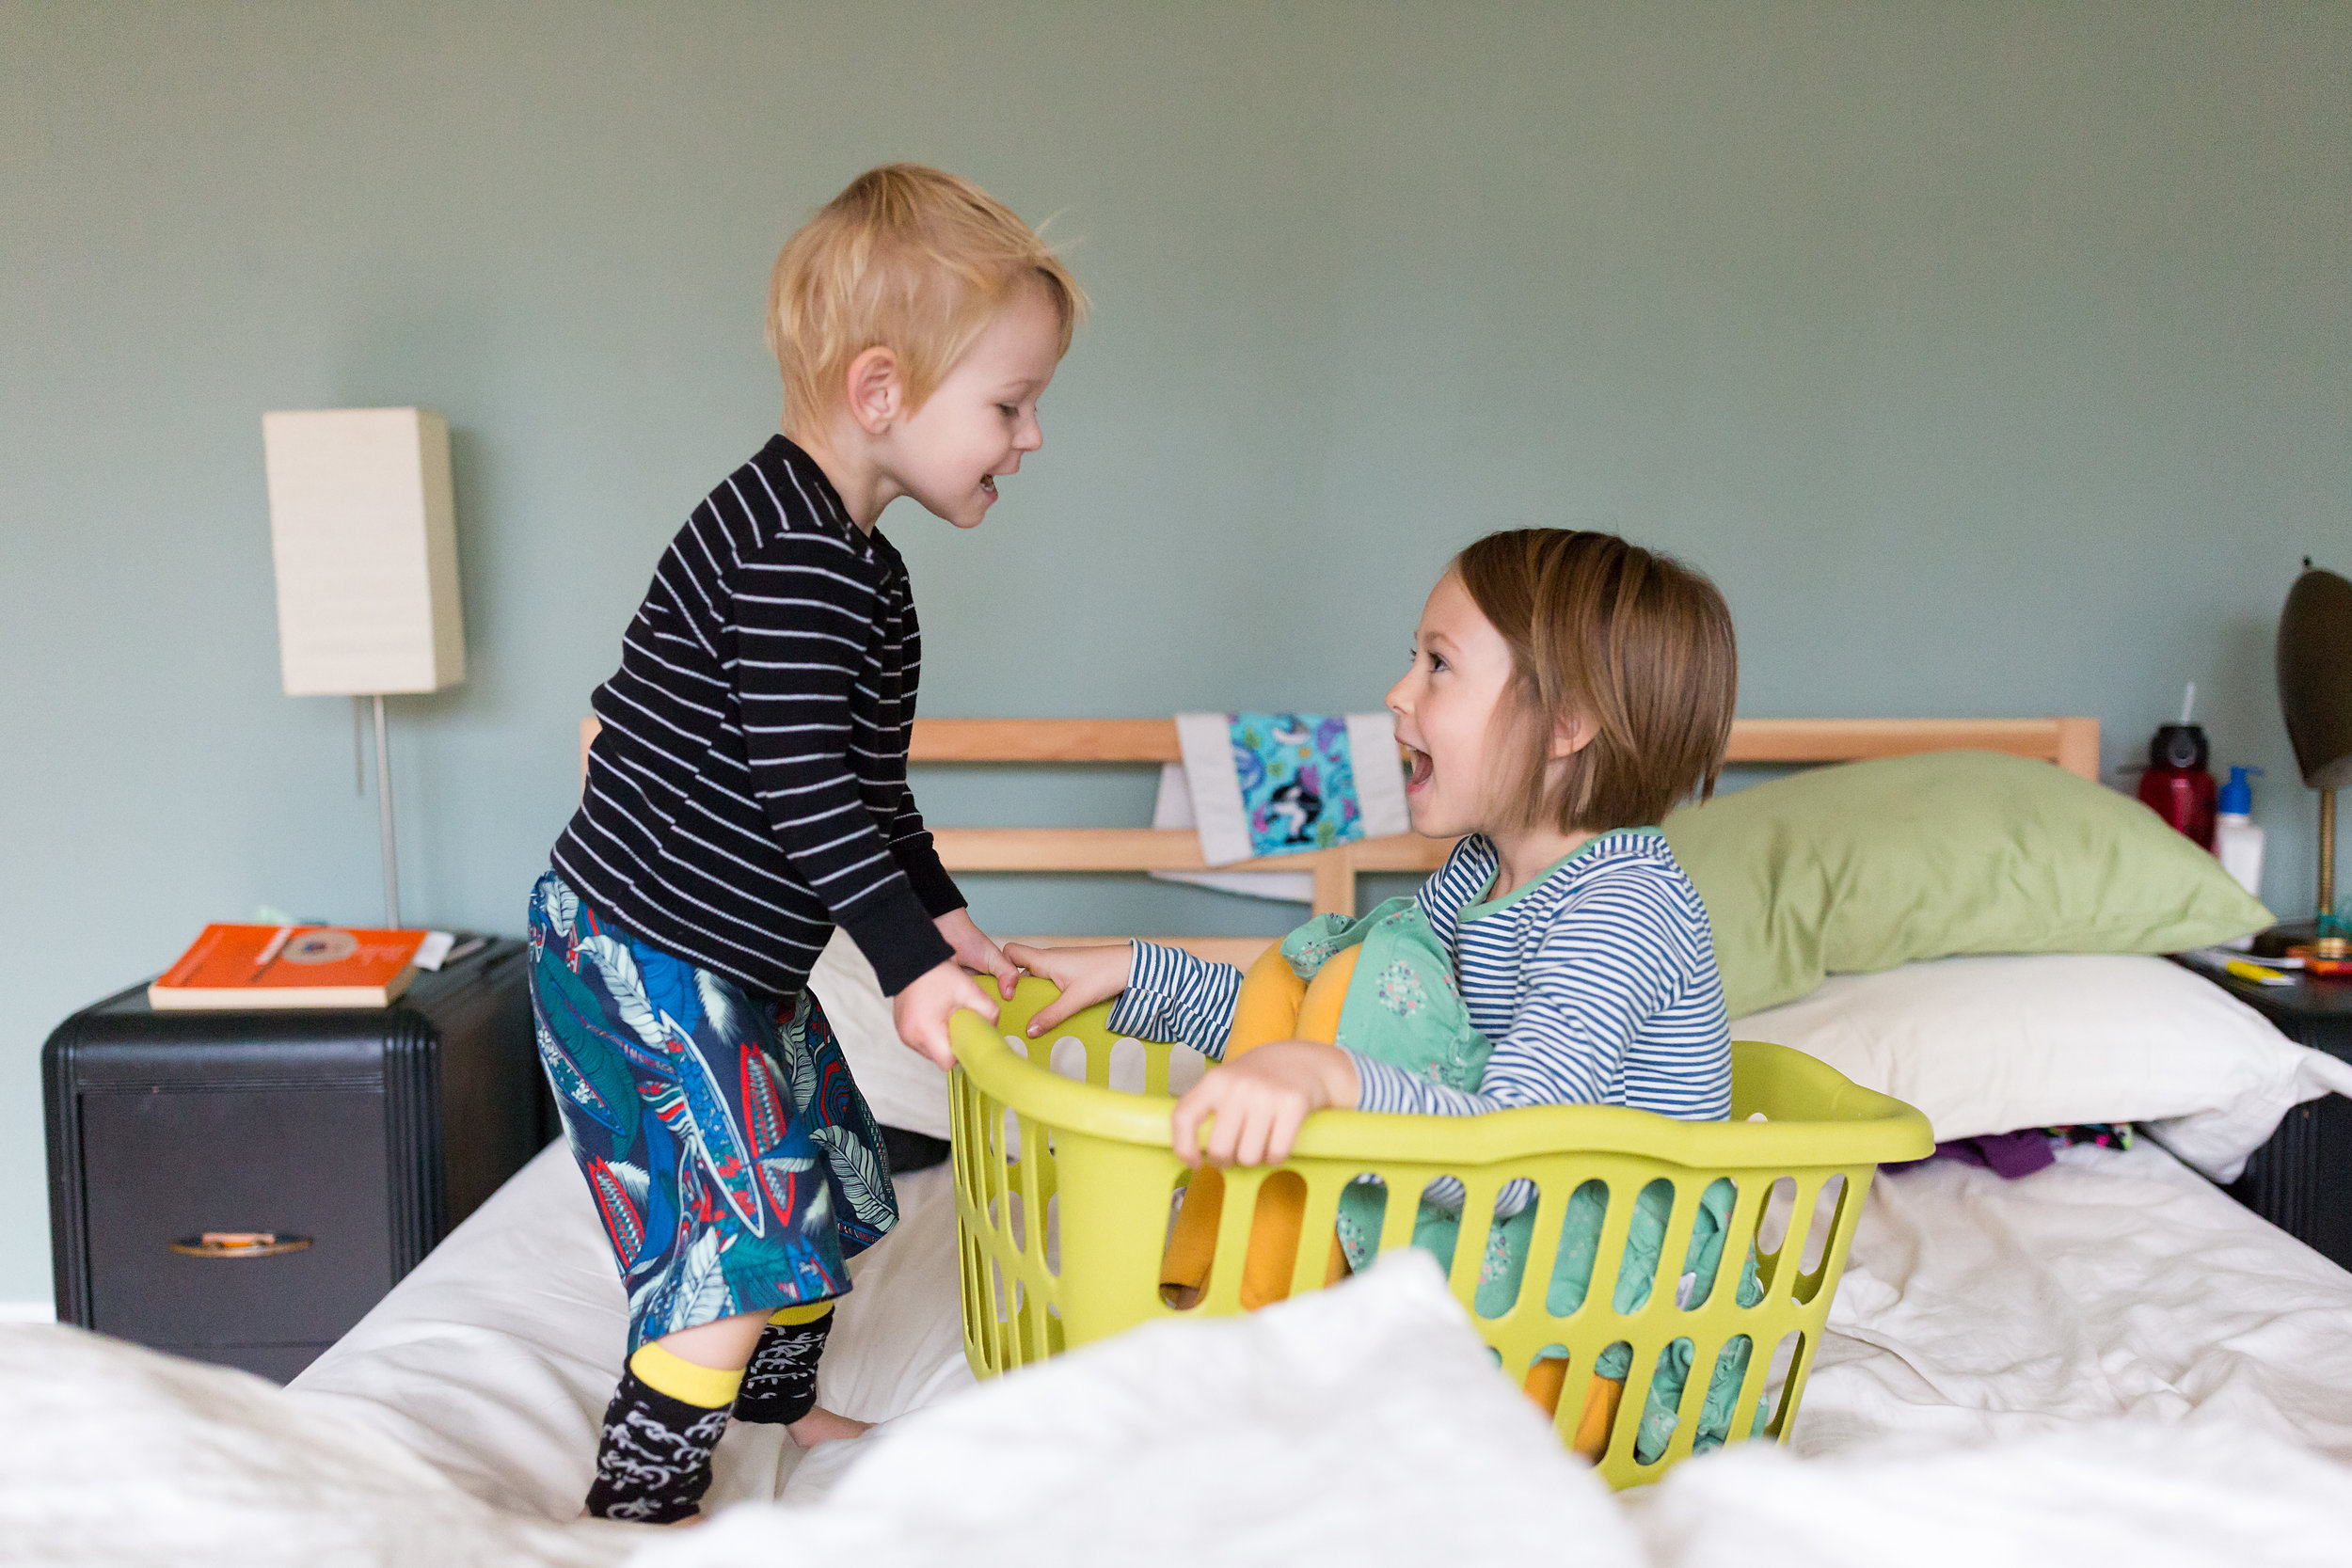 brother and sister play on bed in a laundry basket